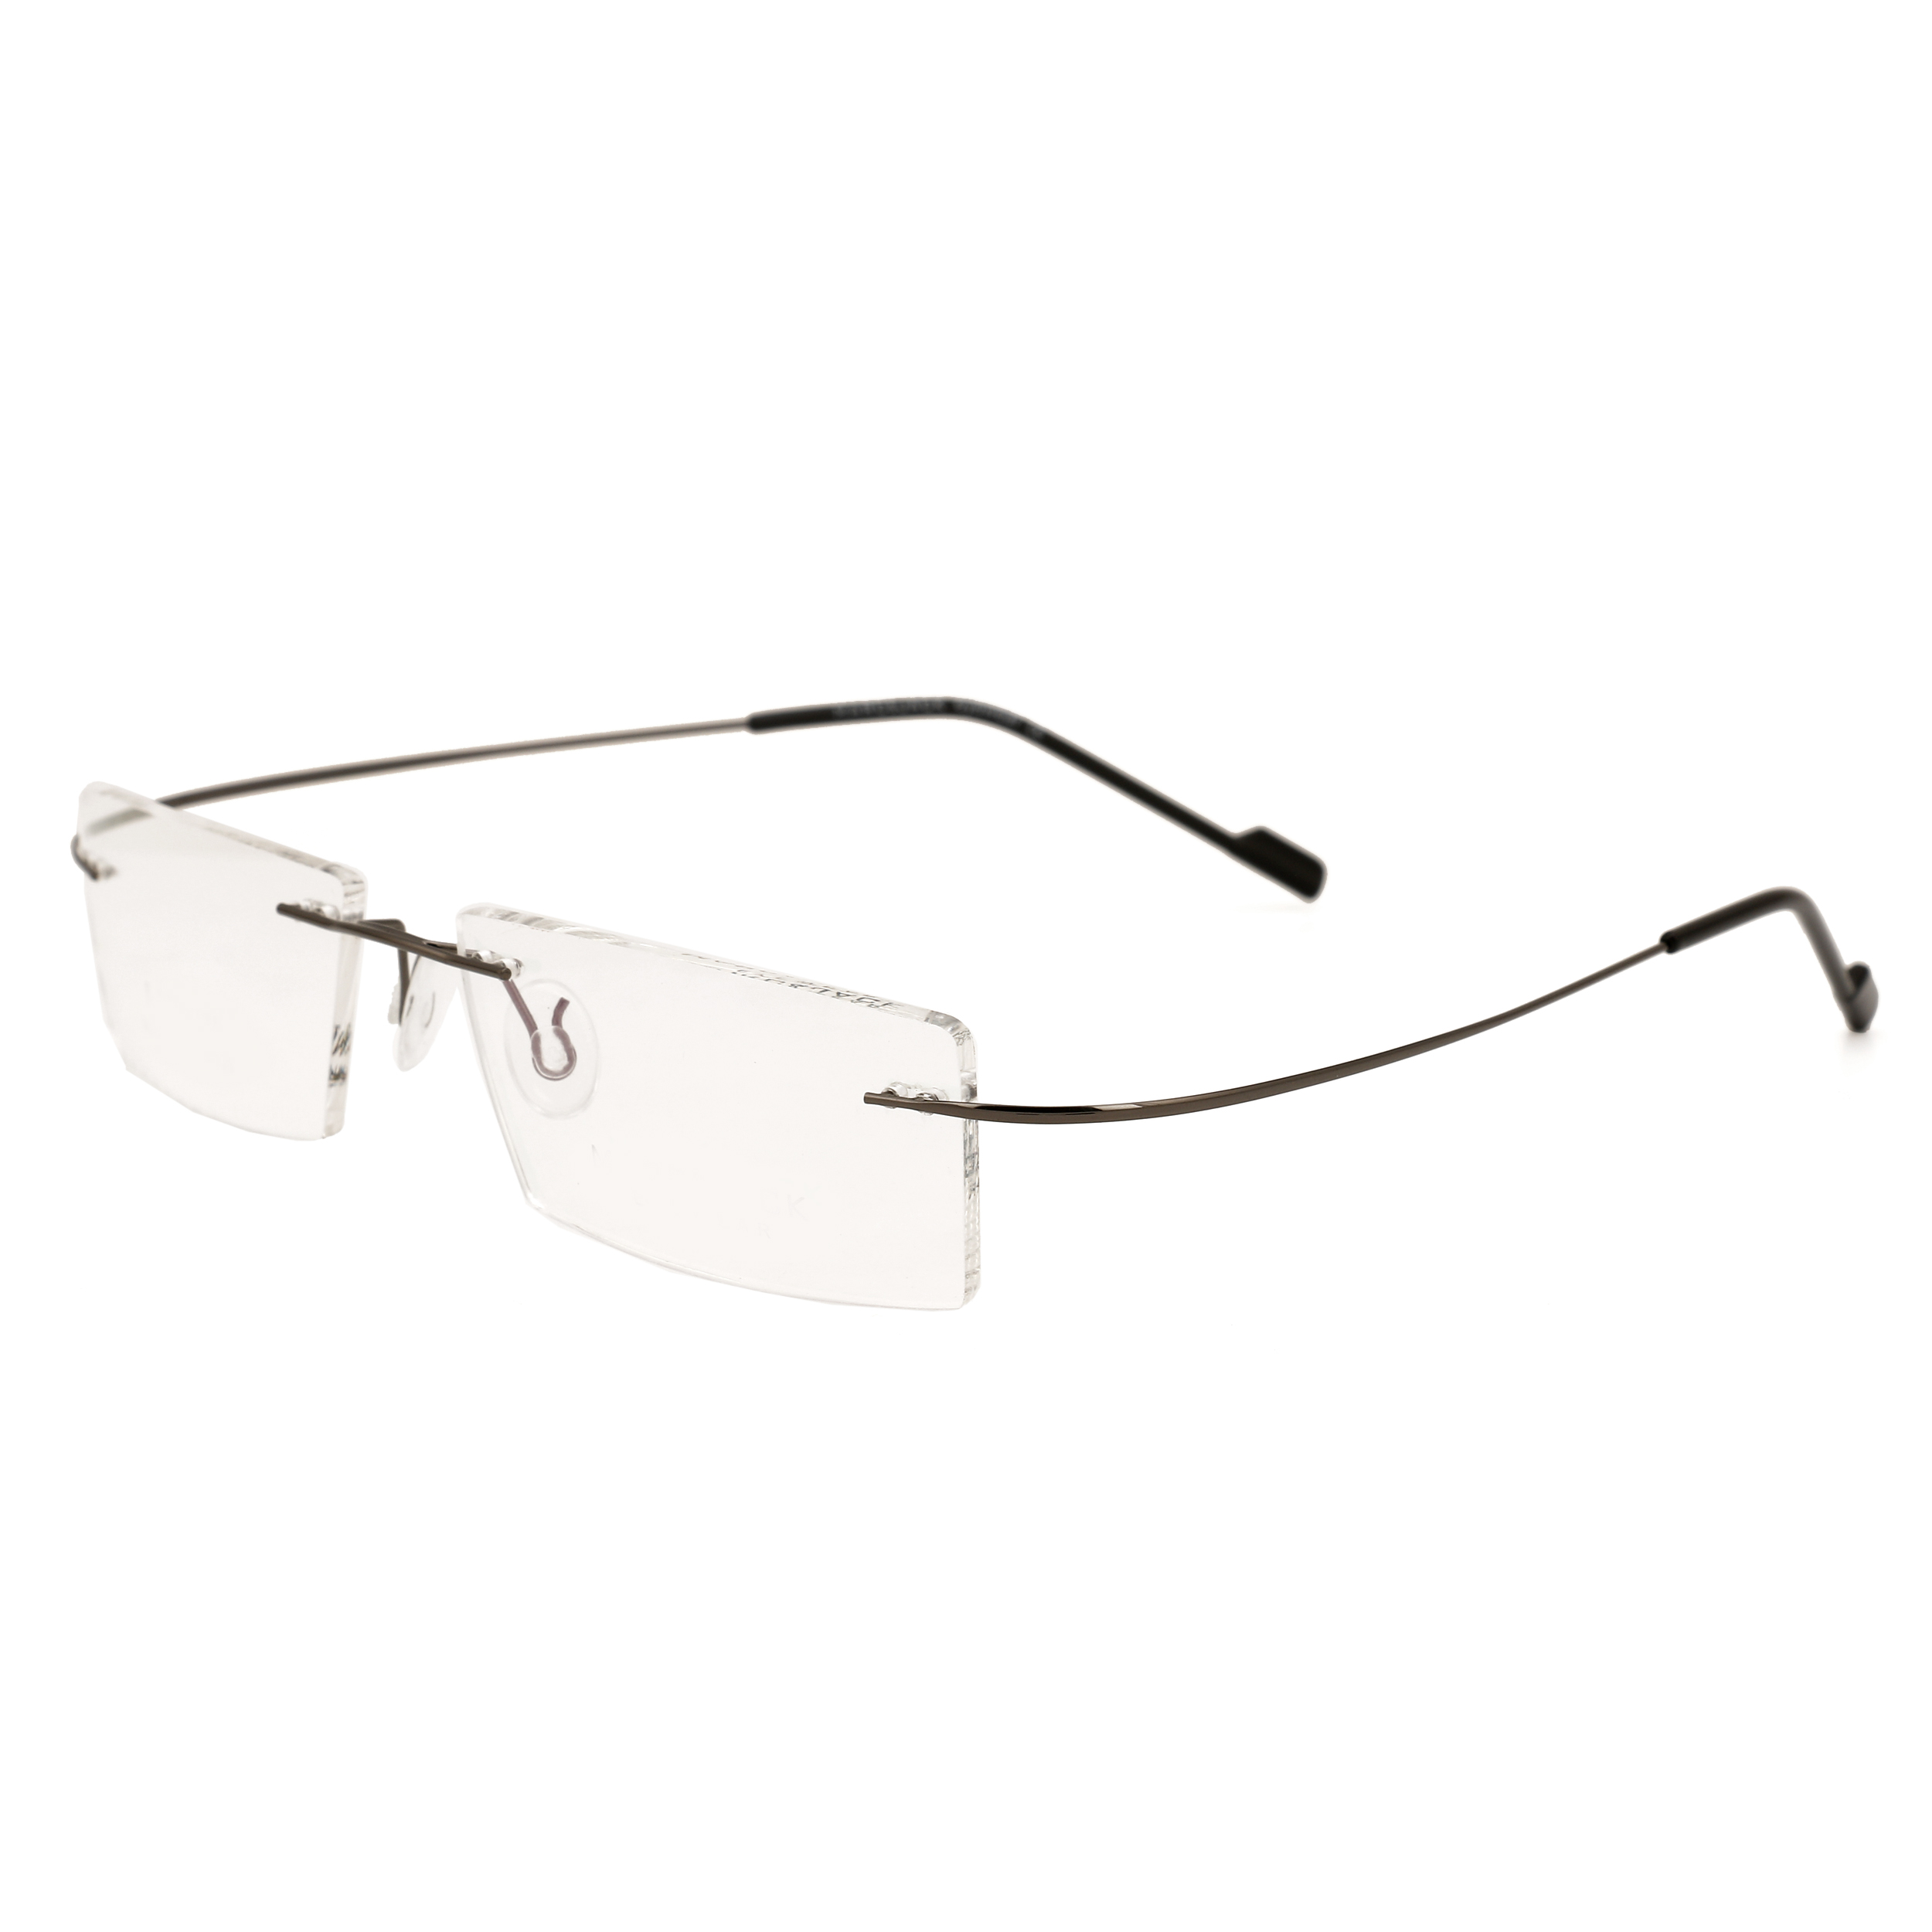 7fce356c6195 Royal Son Rimless Rectangular Unisex Spectacle Frame  (RS02090ER|50|Transparent)